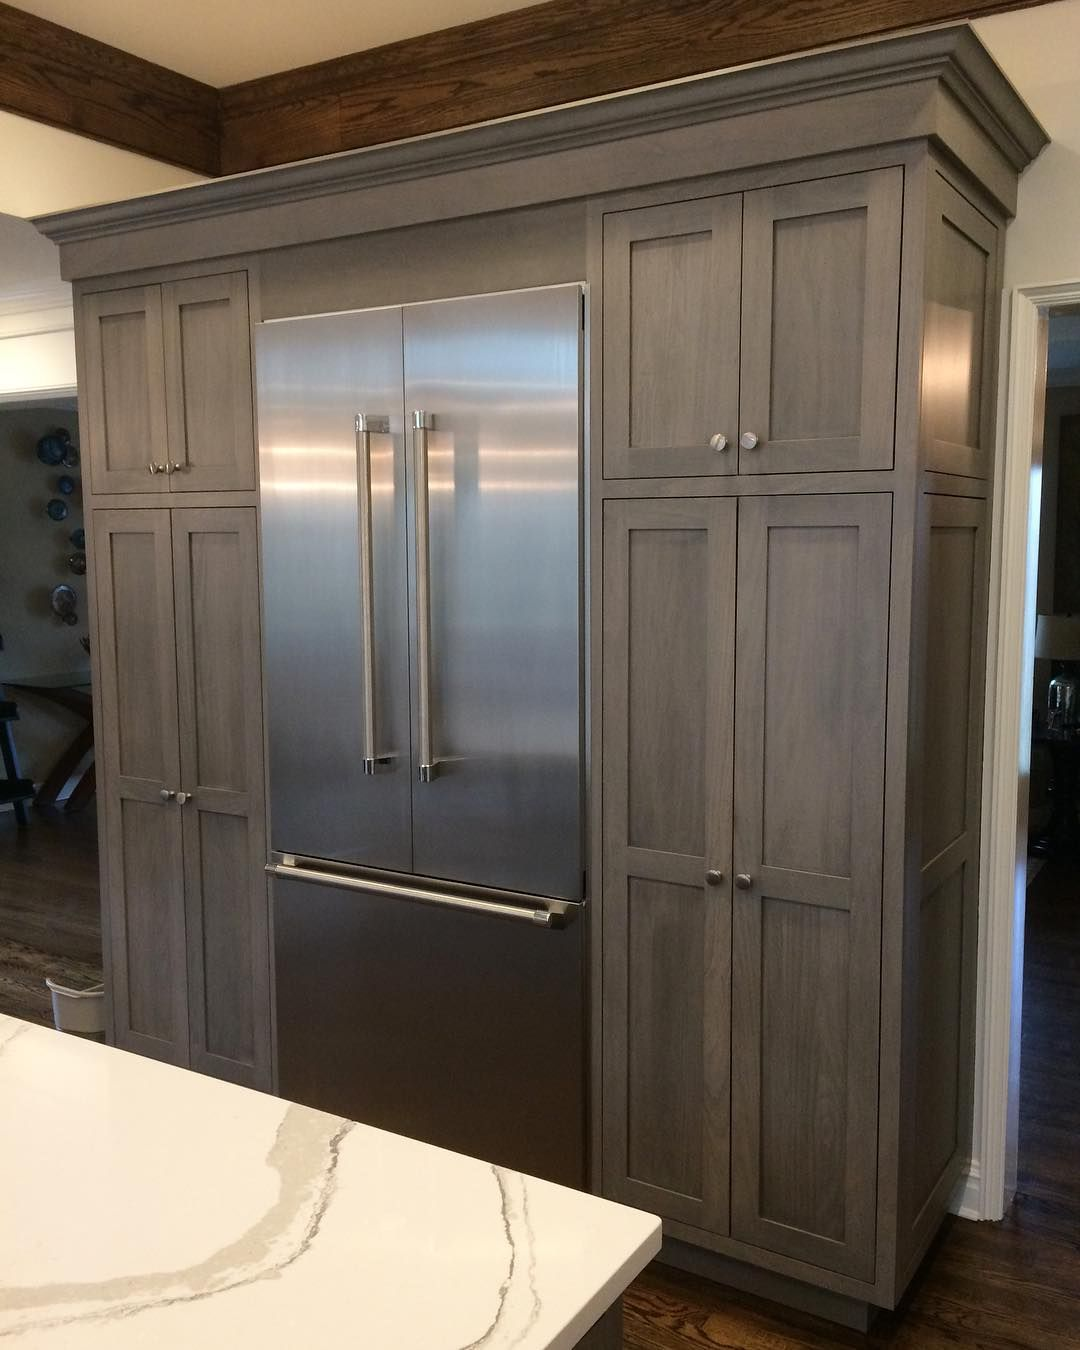 Lovely Light Grey Stained American Poplar Wood Cabinetry